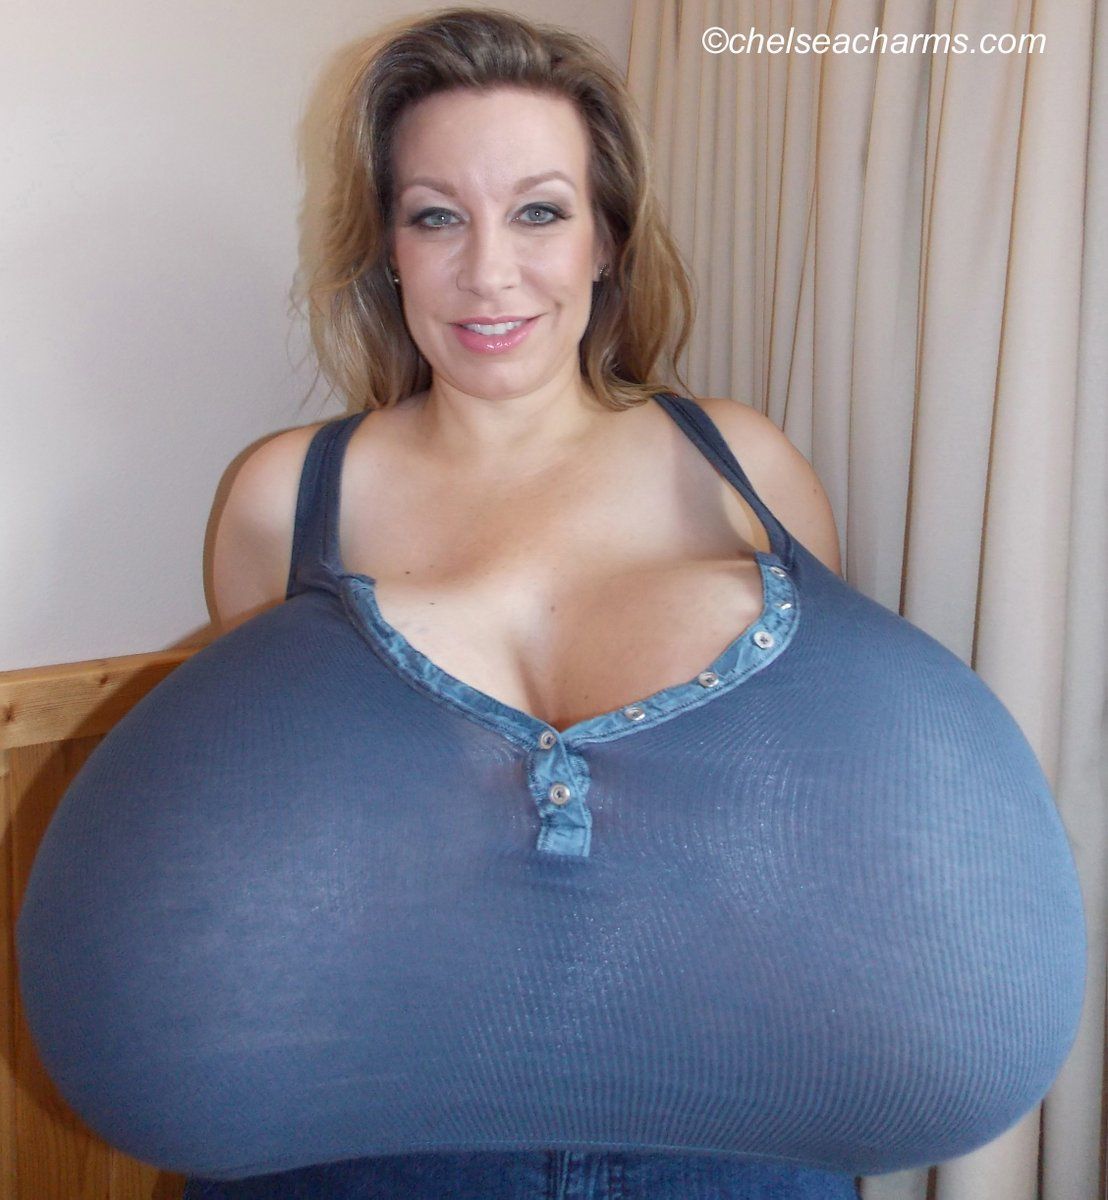 The chelsea charms strap on